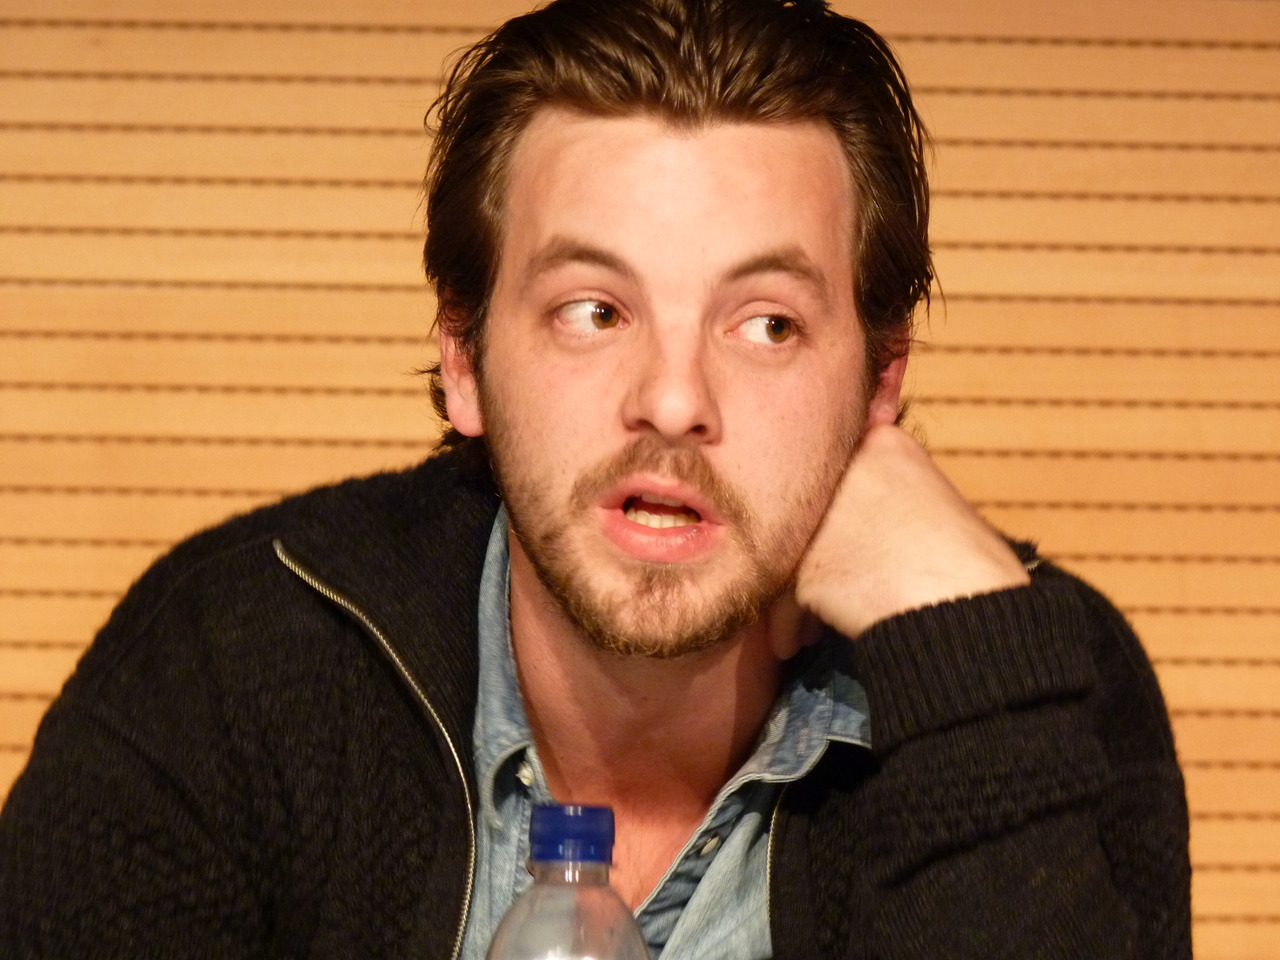 game of thrones images gethin anthony 2012 wales con hd